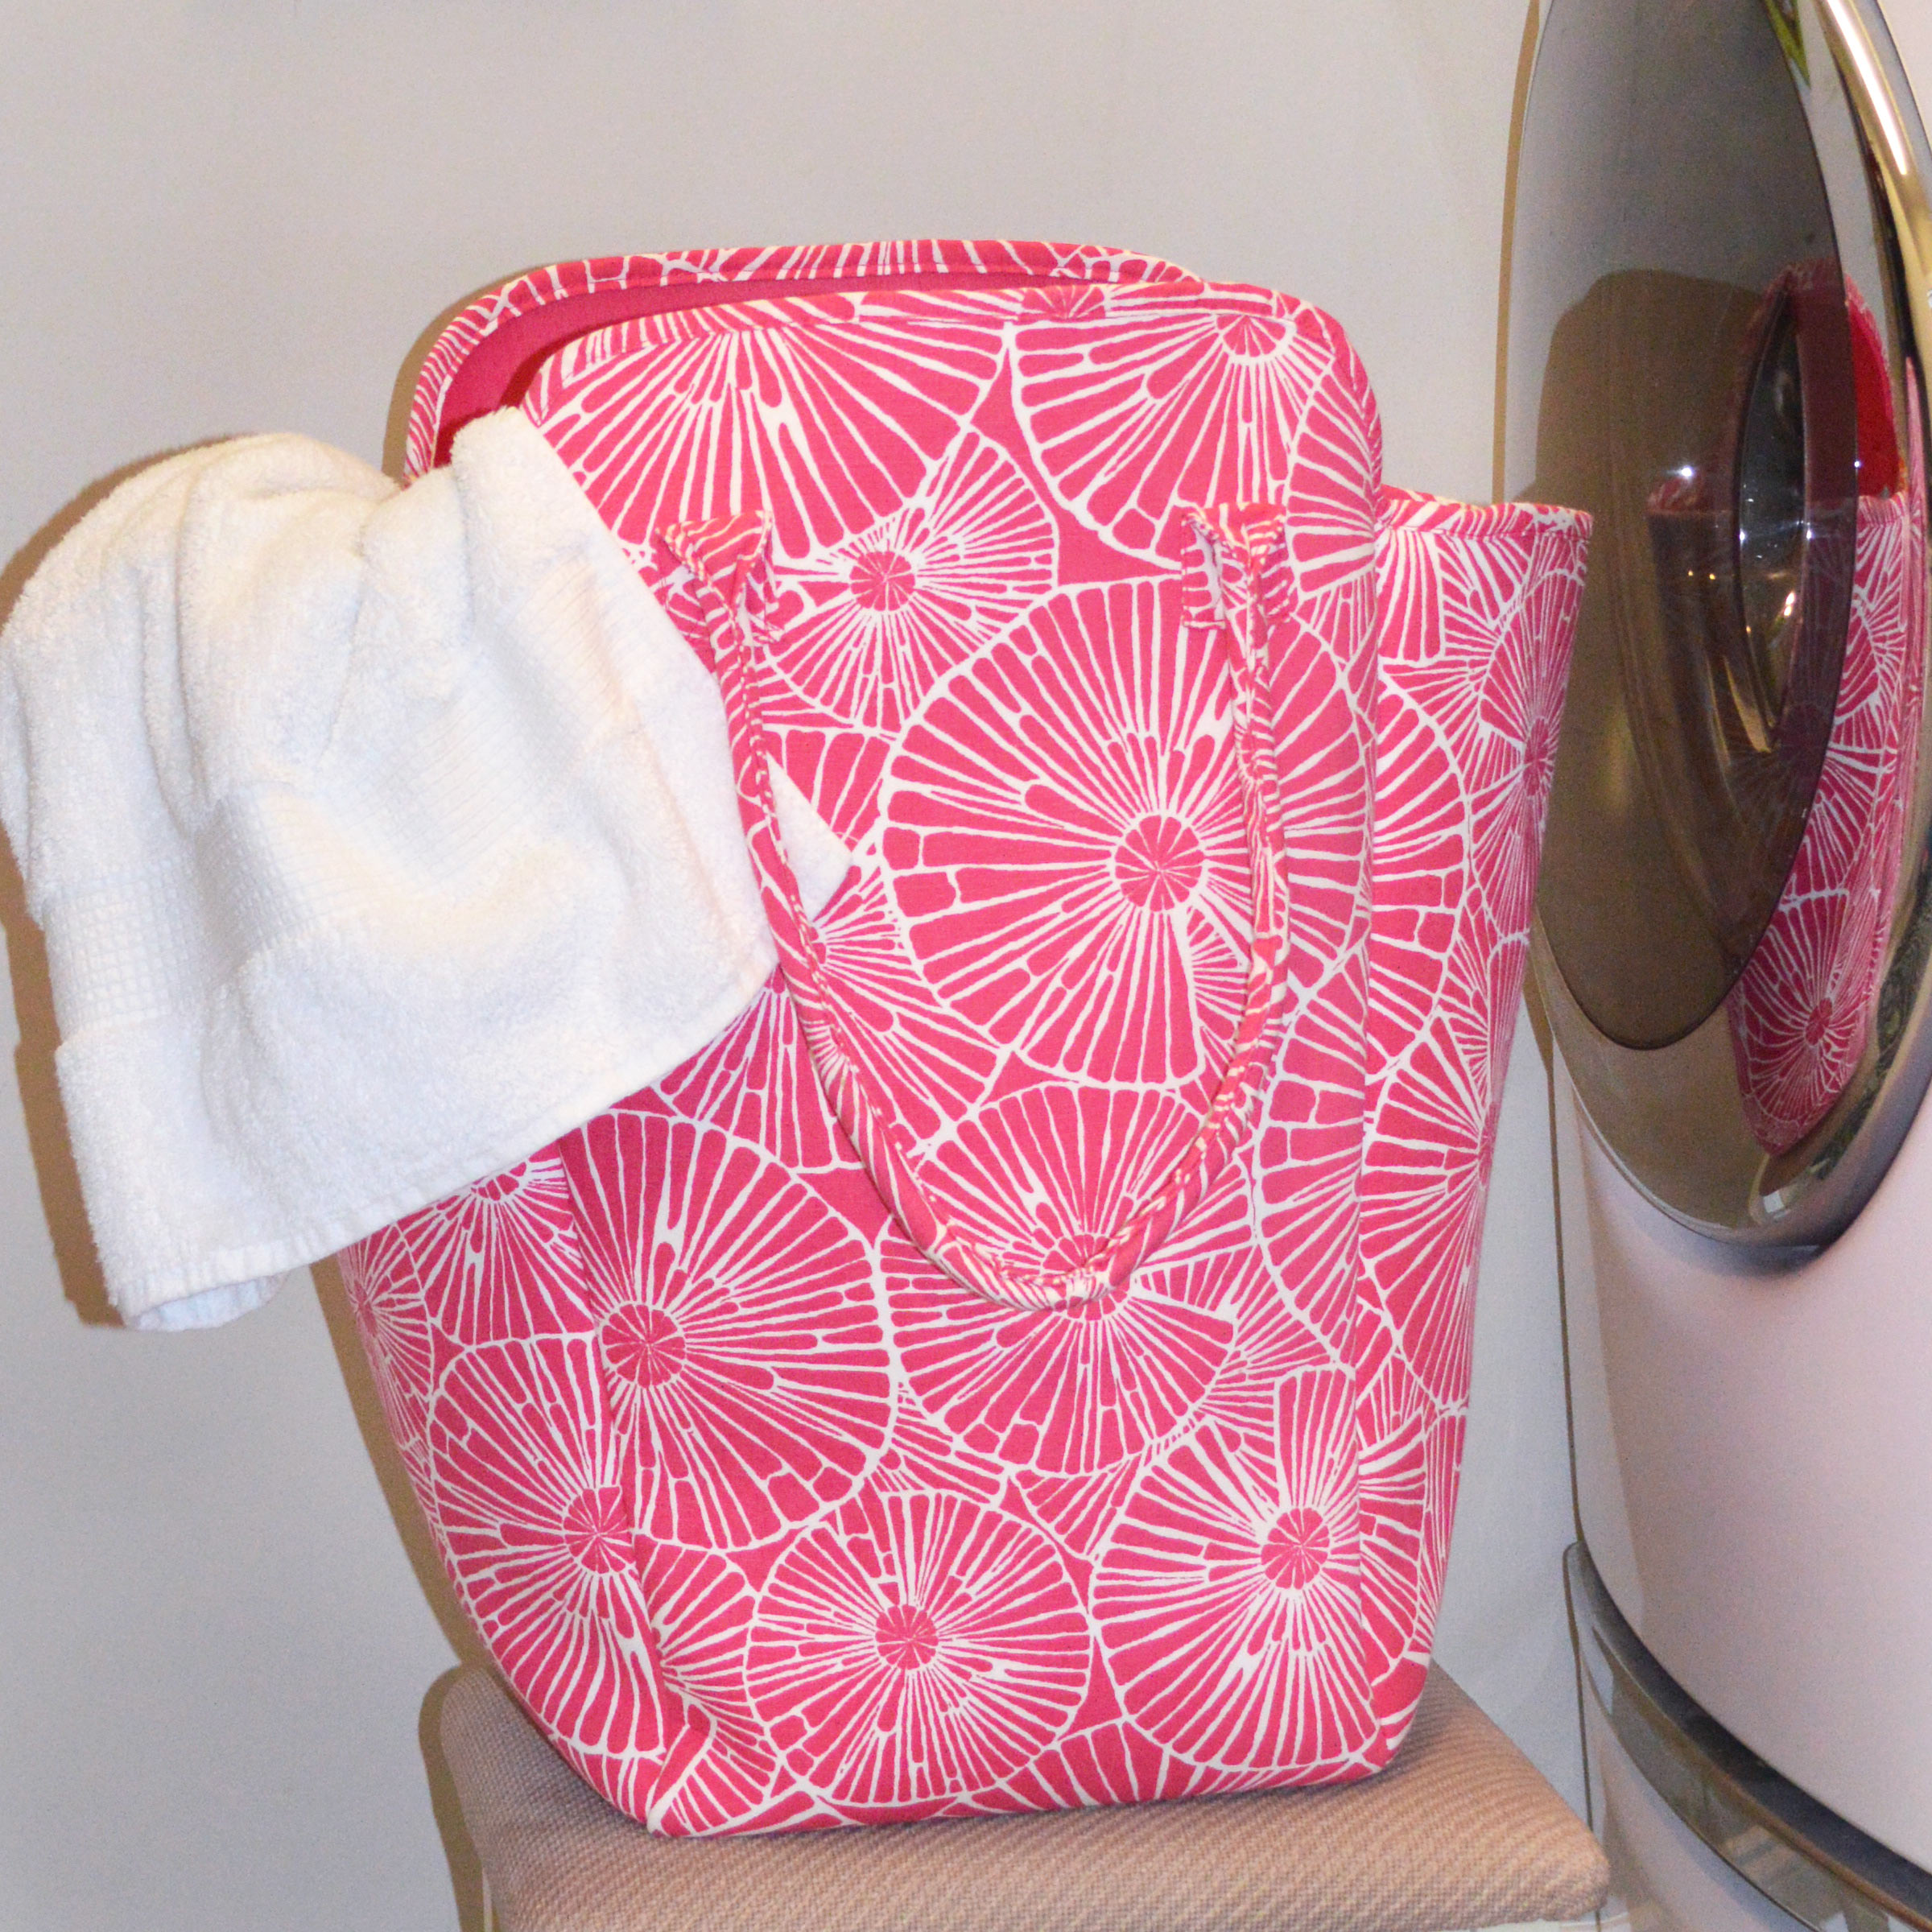 full circle pink beach and laundry EVA tote